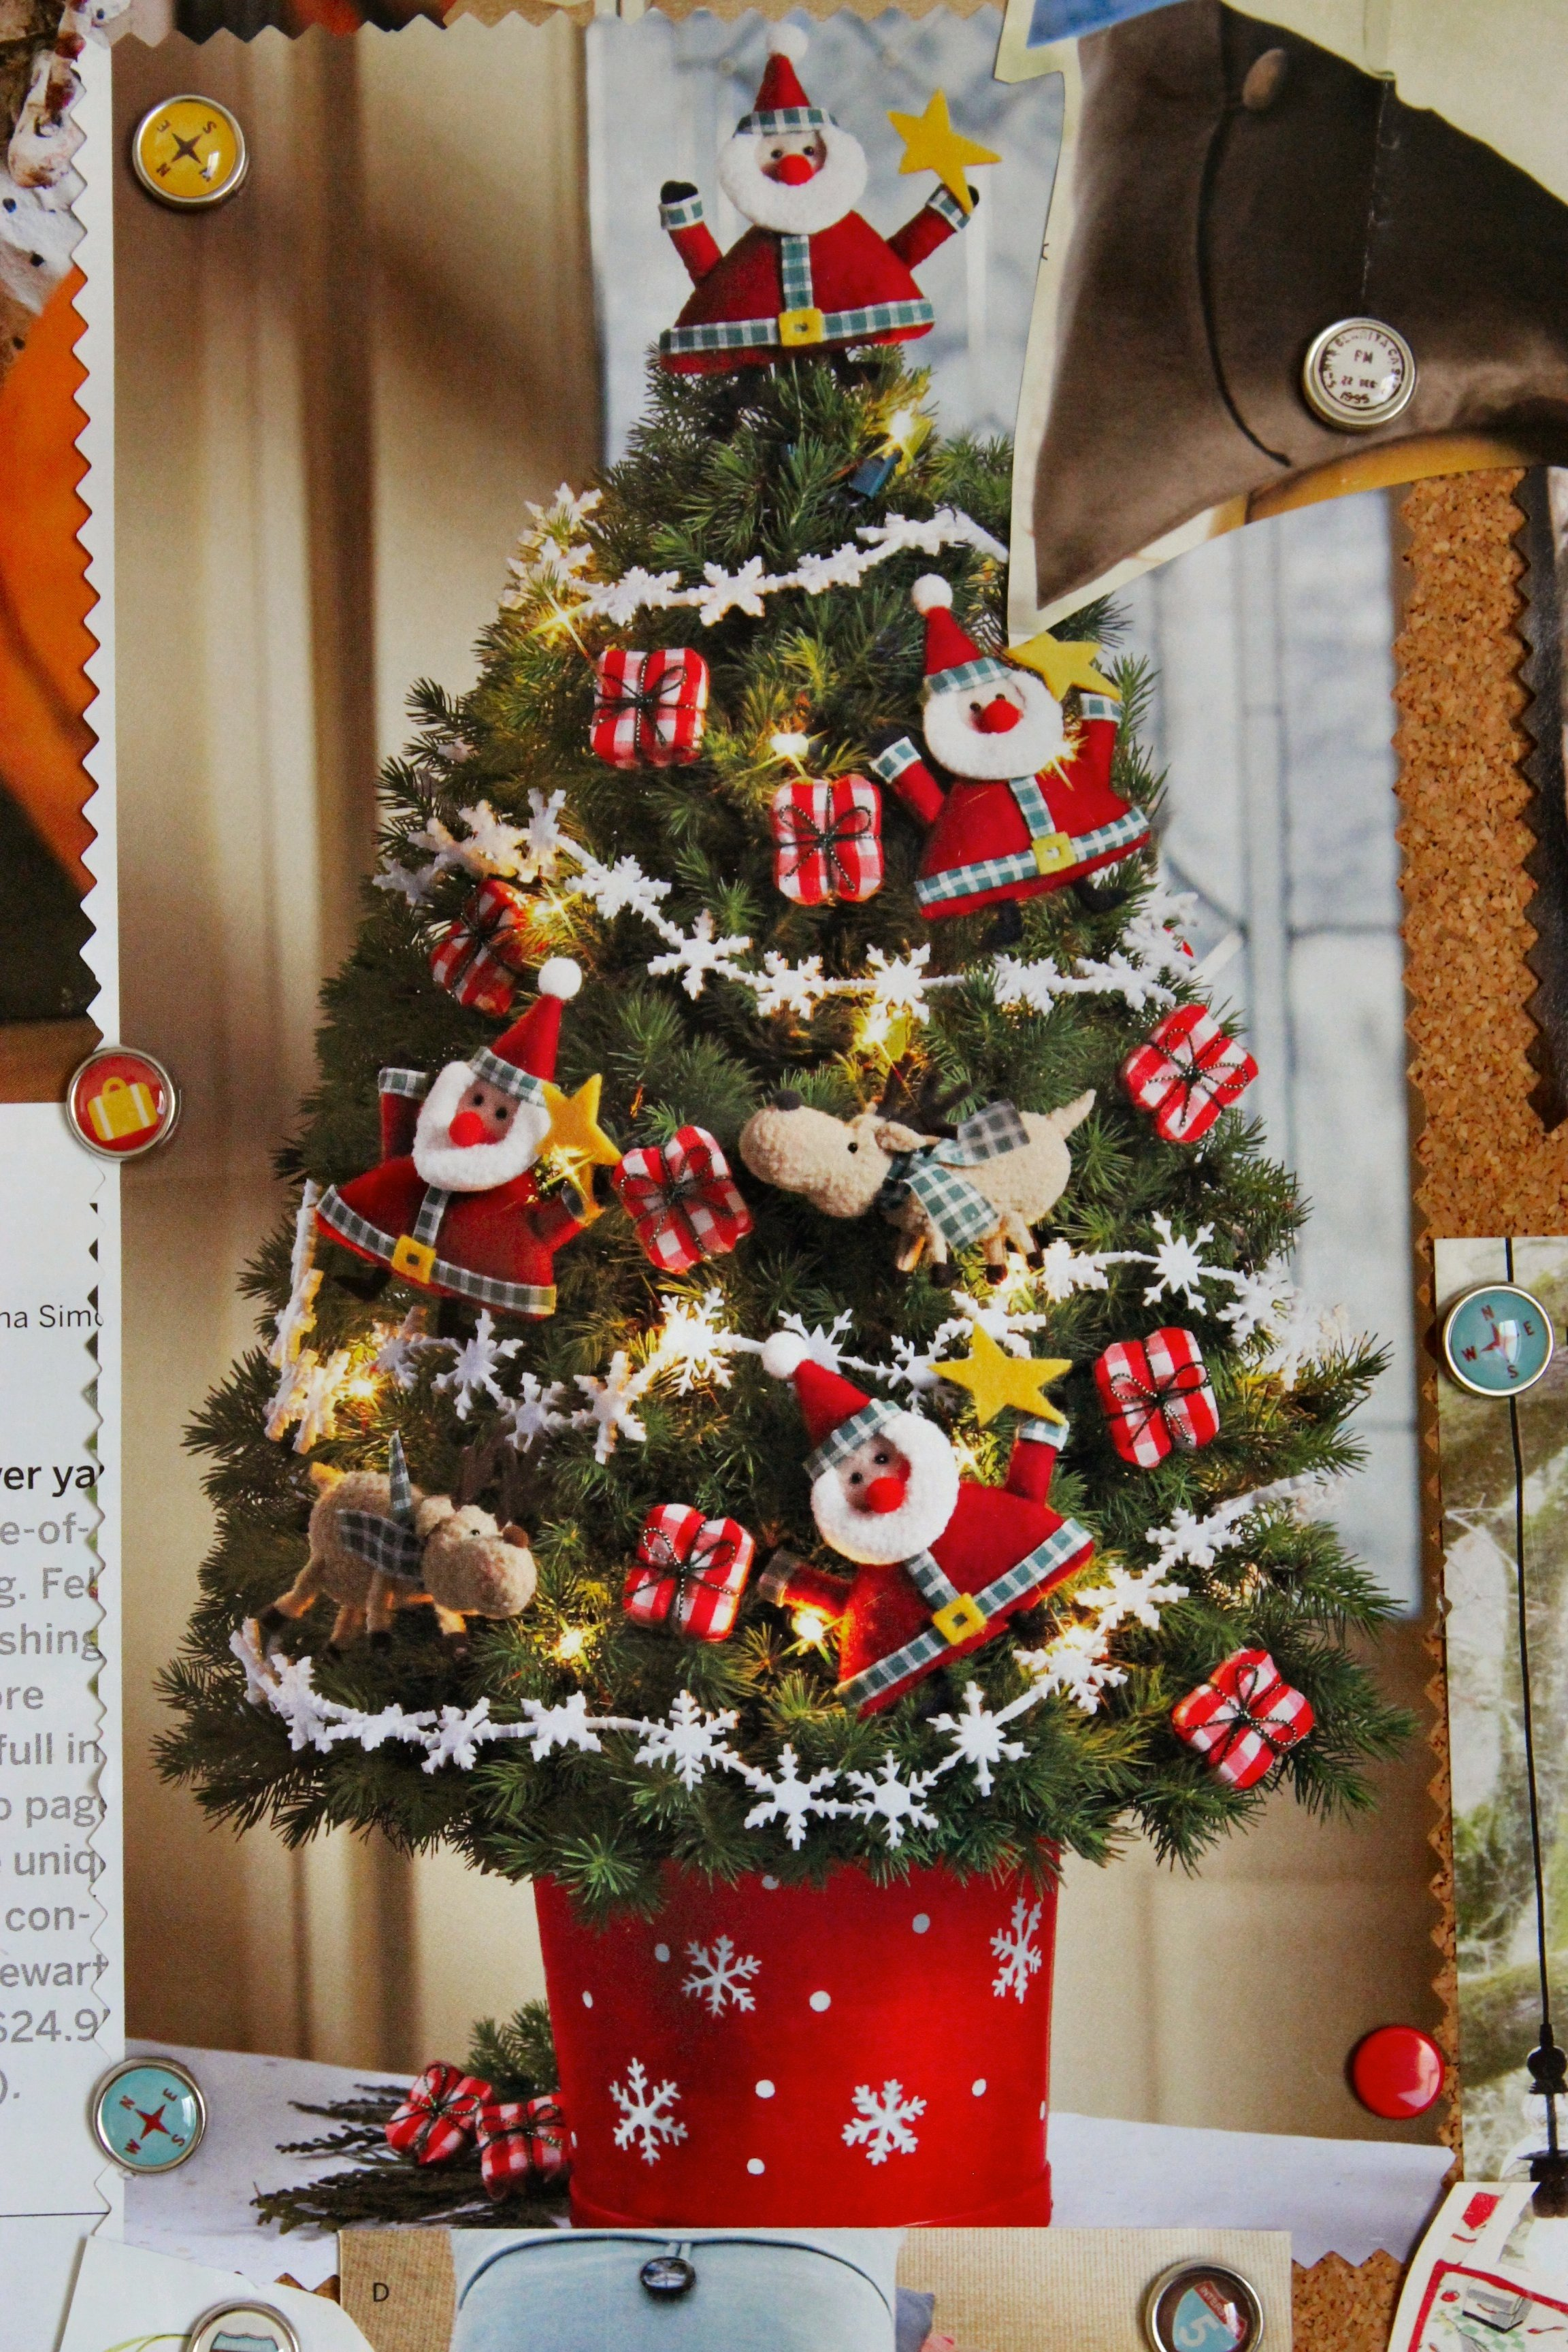 10 Unique Christmas Tree Decorating Ideas For 2012 how to make beautiful christmas tree decorations decoration photo 2020